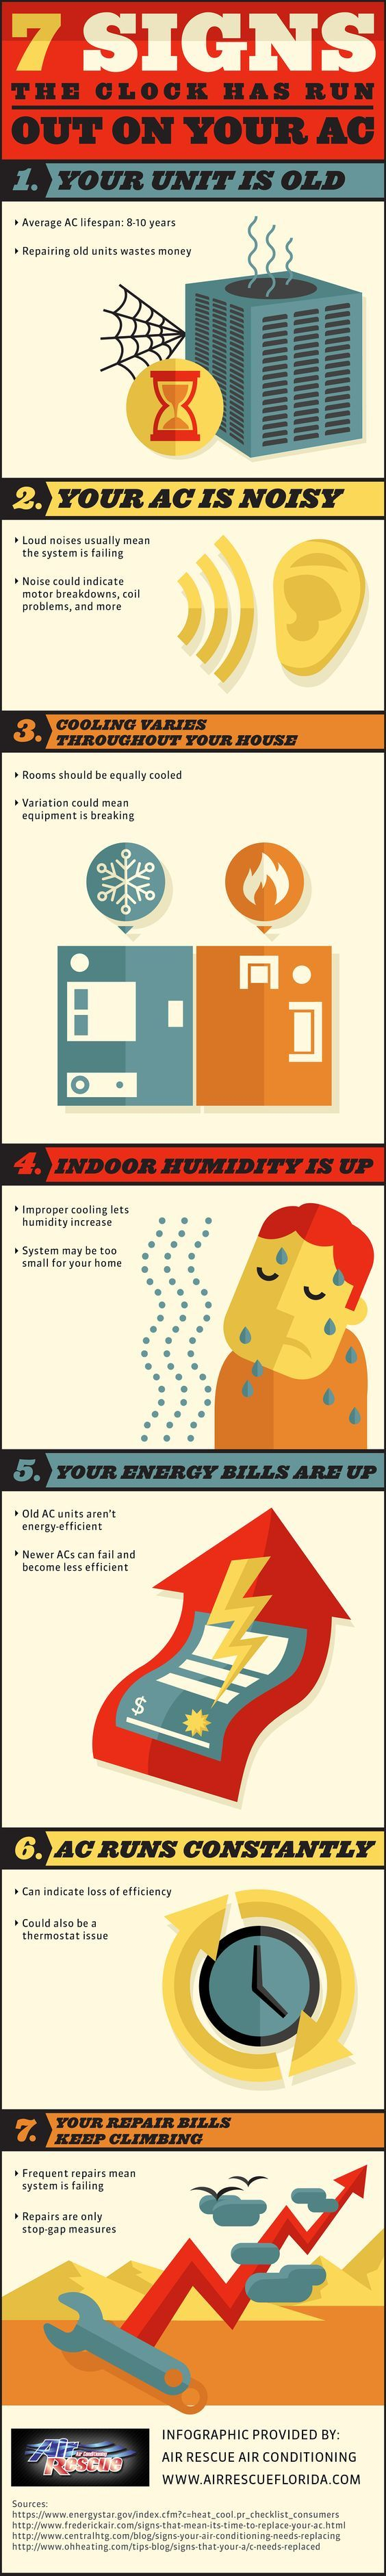 15 Best Hvac Fun Facts Images On Pinterest Fun Facts